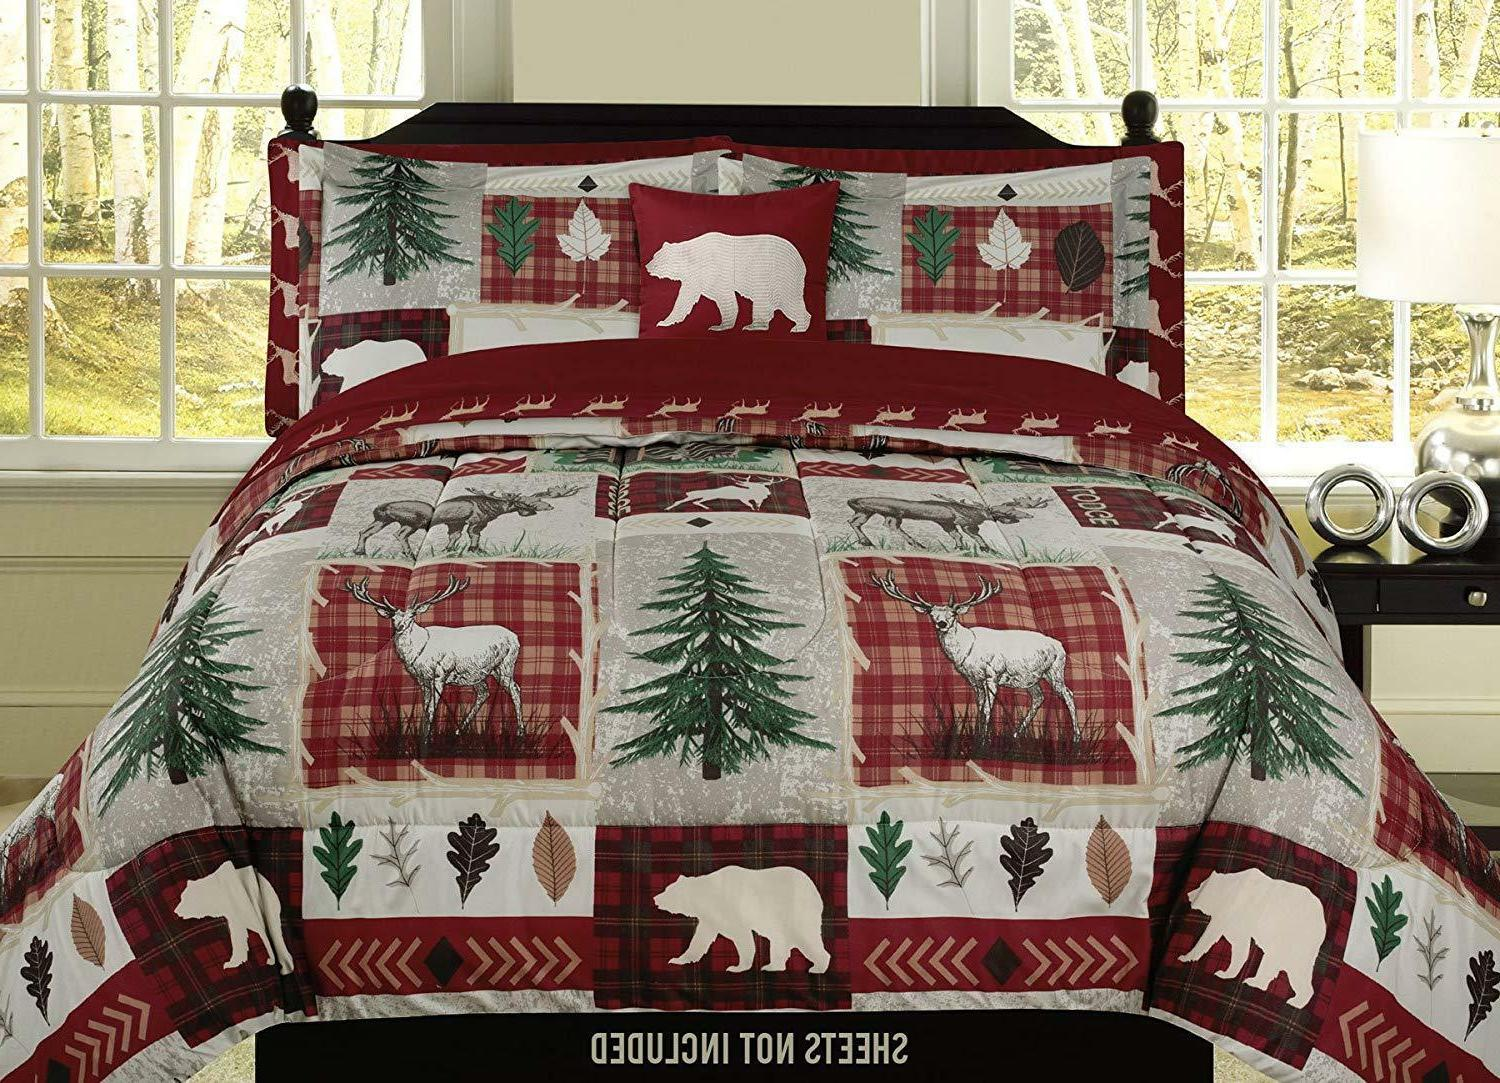 Comforters Bedding Sets Home Garden King Full Queen Or Twin Bear Lodge Deer Elk Rustic Cabin Comforter Bedding Set 360idcom Fr